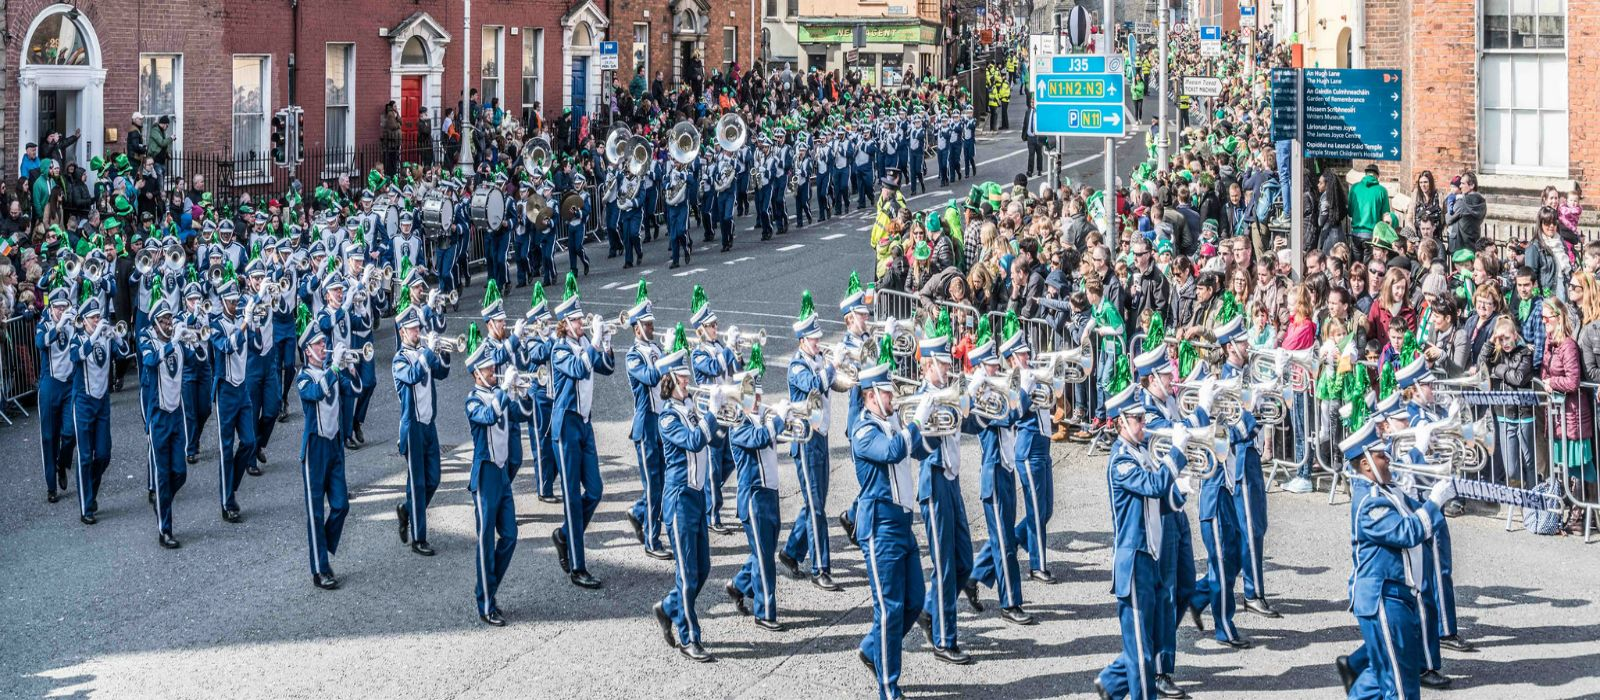 Marching band enjoying st.Patrick's day parade on marching band performance tours of Ireland.